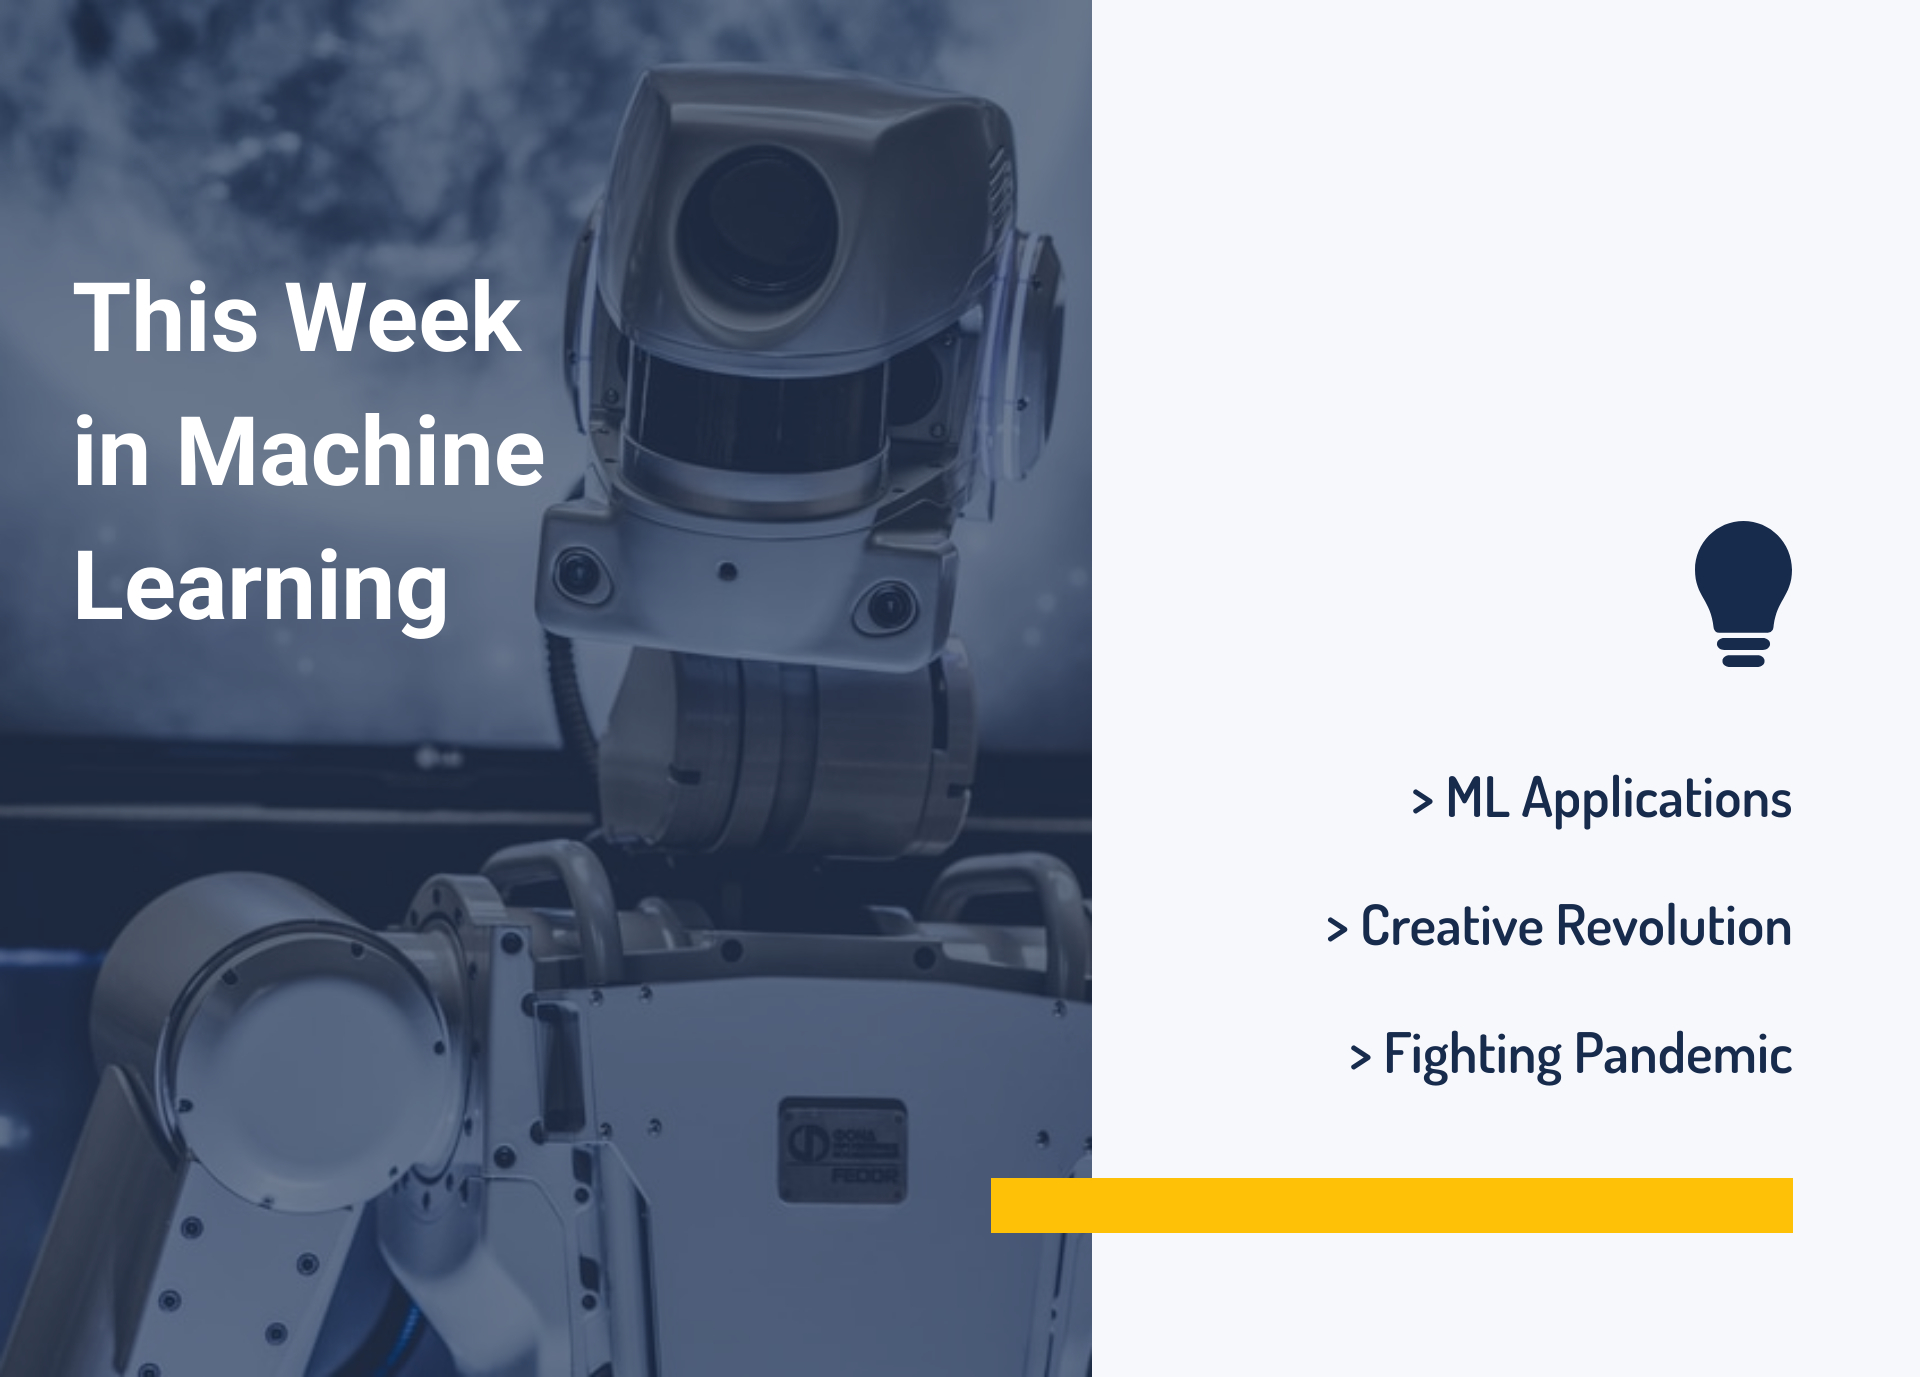 This Week in Machine Learning: ML Applications, Creative Revolution, and Fighting Pandemic